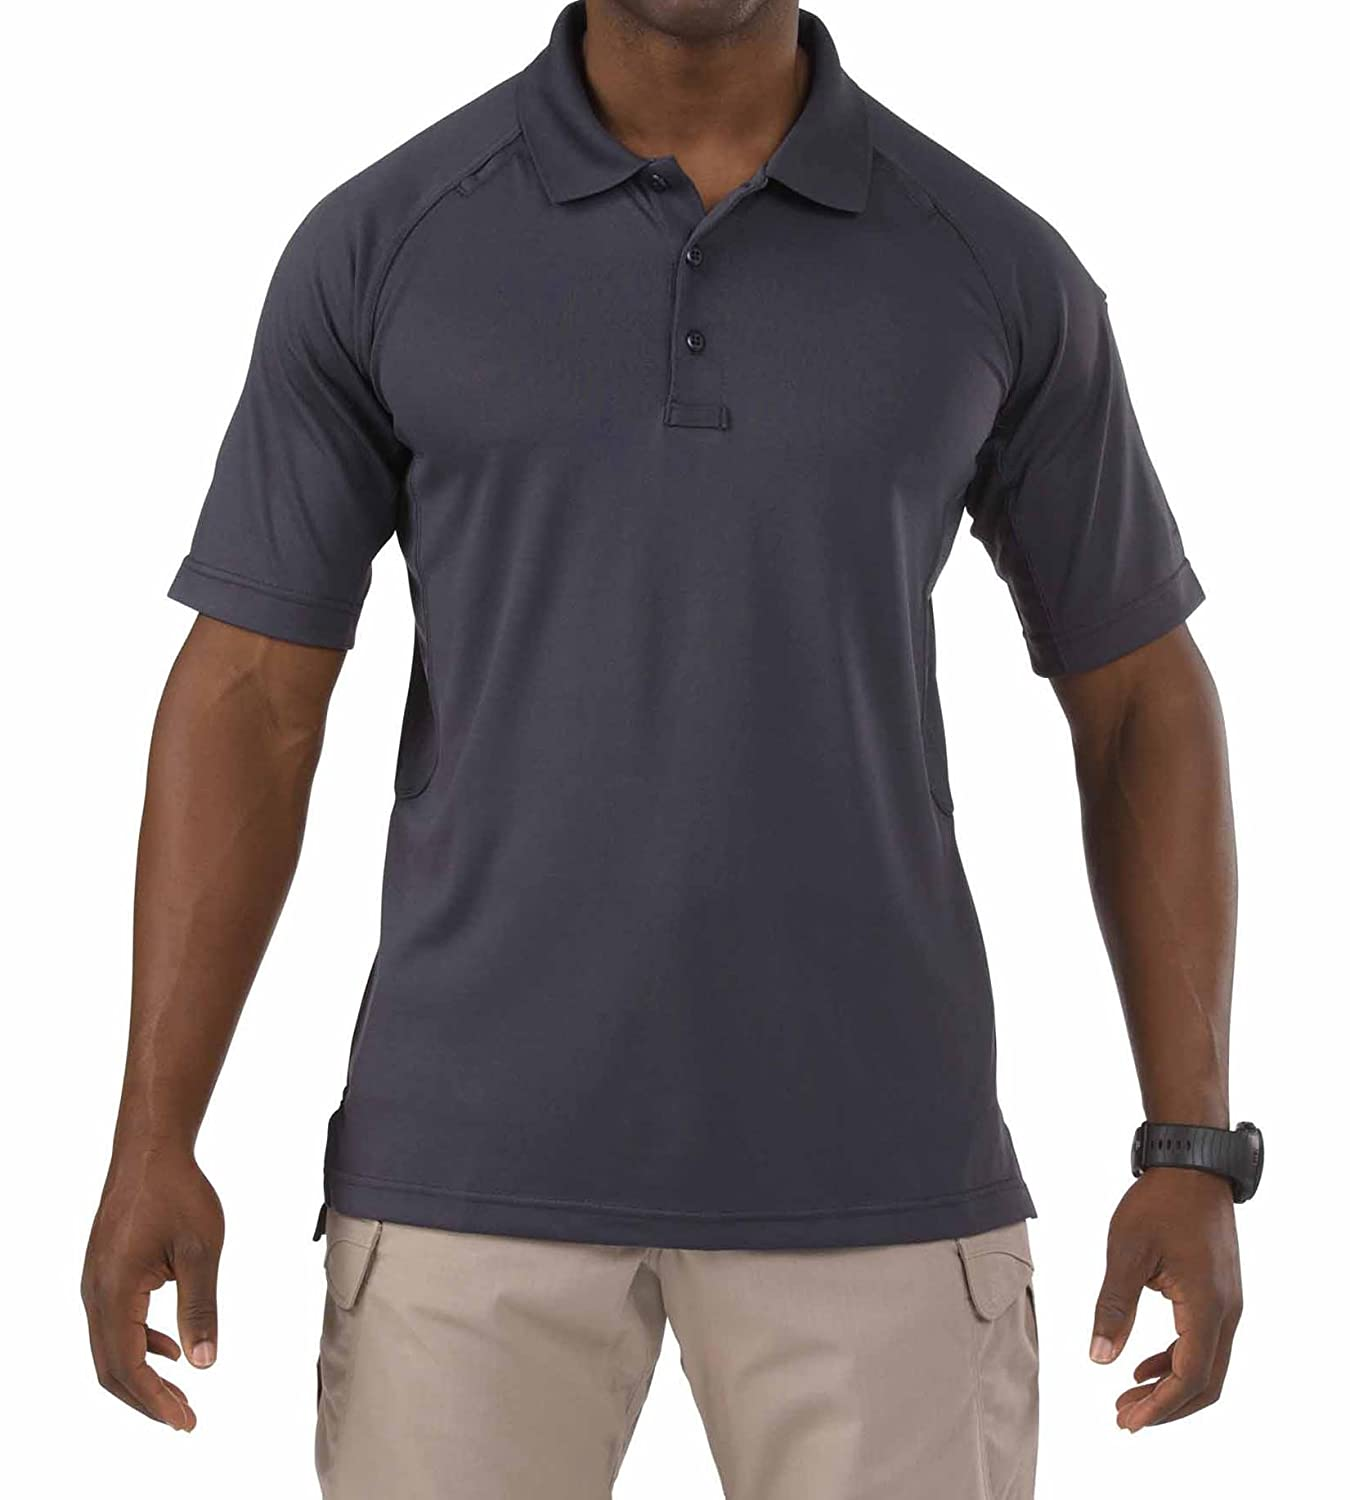 5.11#71049 Performance Polo Short Sleeve Shirt 5-71049